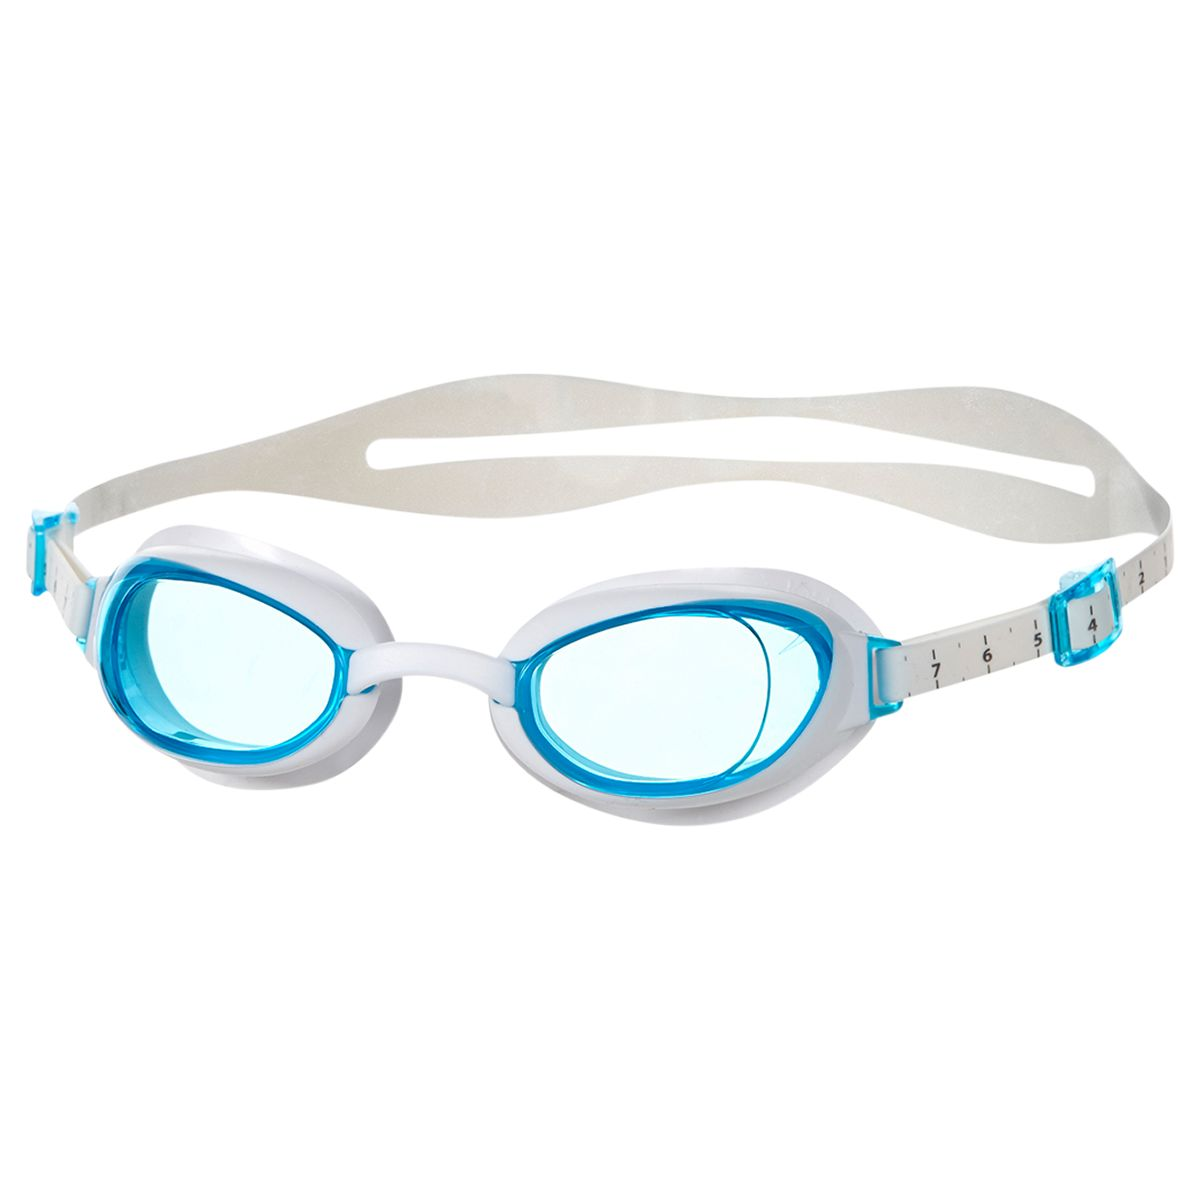 A guide to swimming goggles